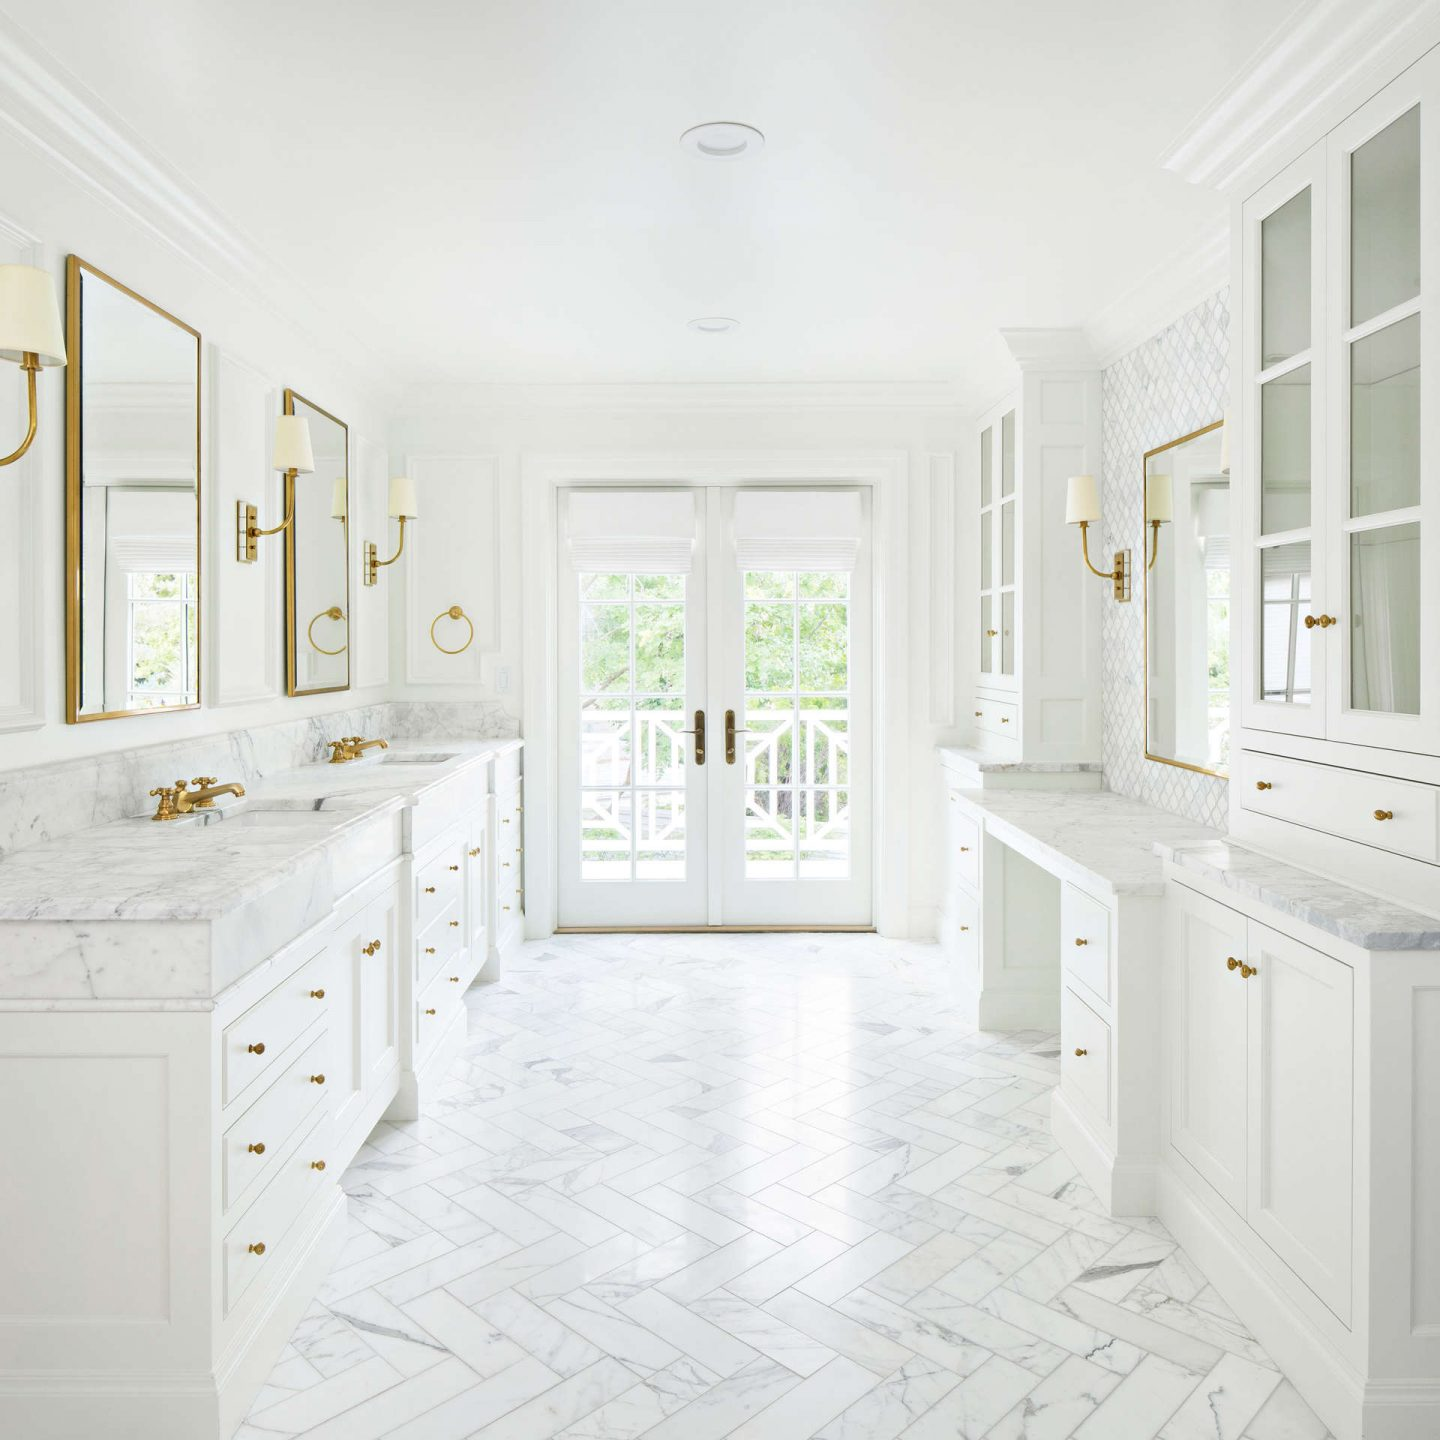 Calcatta marble is set in a herringbone pattern on the floor of a luxurious bathroom. Come explore these timeless design ideas...hello lovely indeed. #thefoxgroup #bathroomdesign #calacattamarble #herringbone